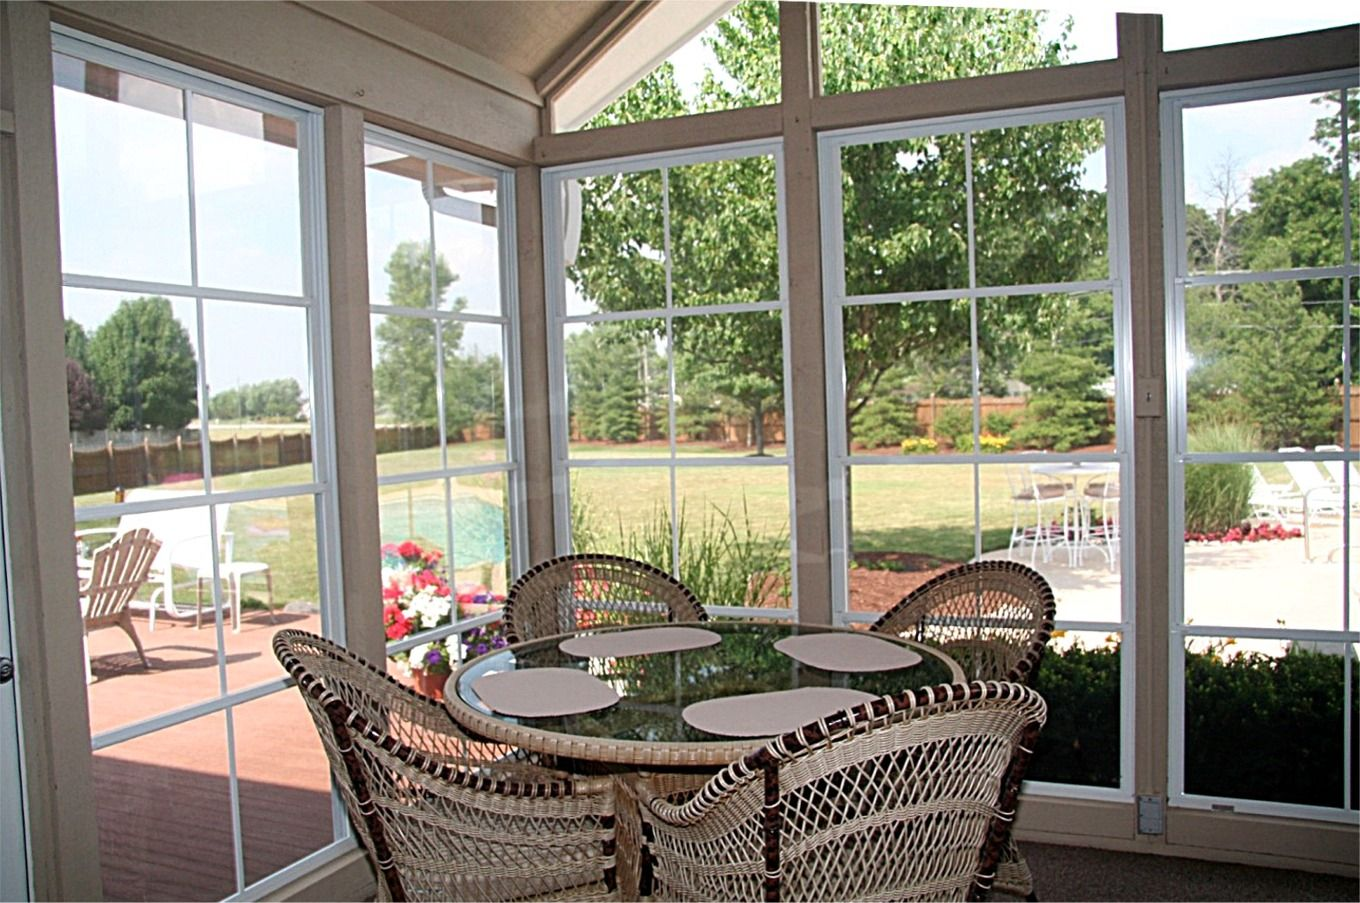 Wonderful Sun Room Design Interior With Glass Window and Comfortable ...